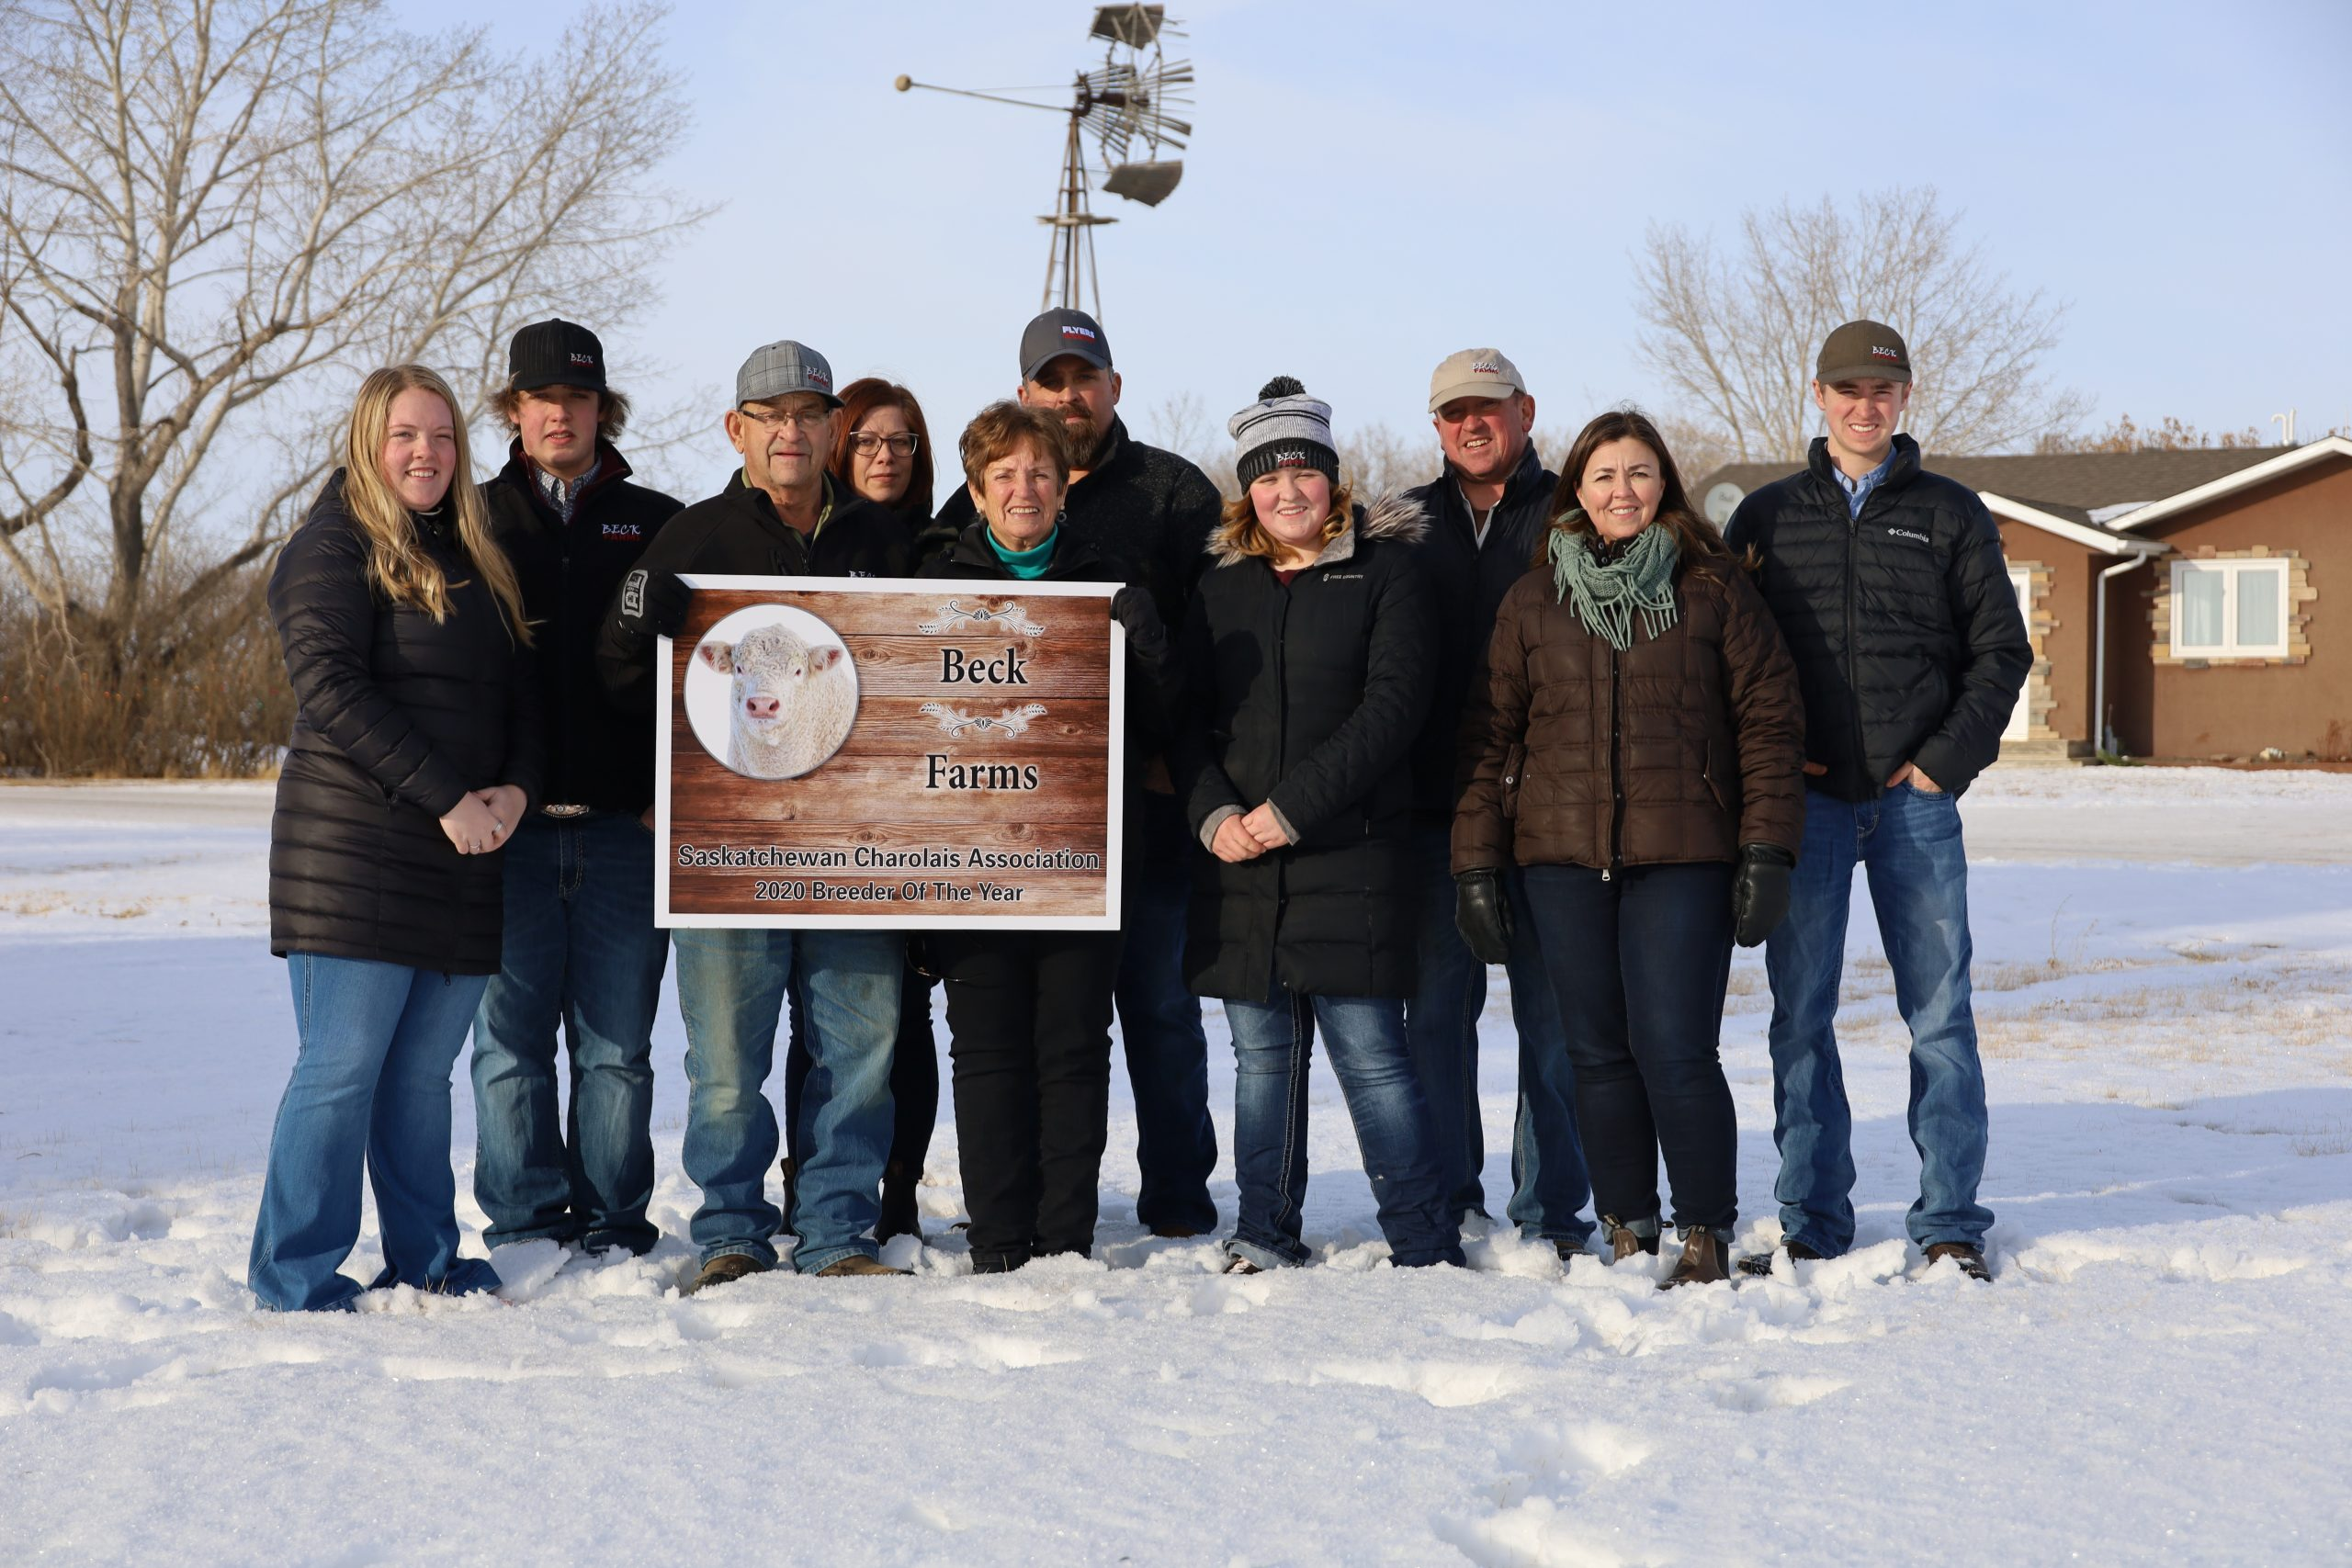 Recipients of the Saskatchewan's Charolais Association's 2020 Charolais Breeder of Year, Beck Farms includes three generations of farmers. (Photo by Tami Beck)